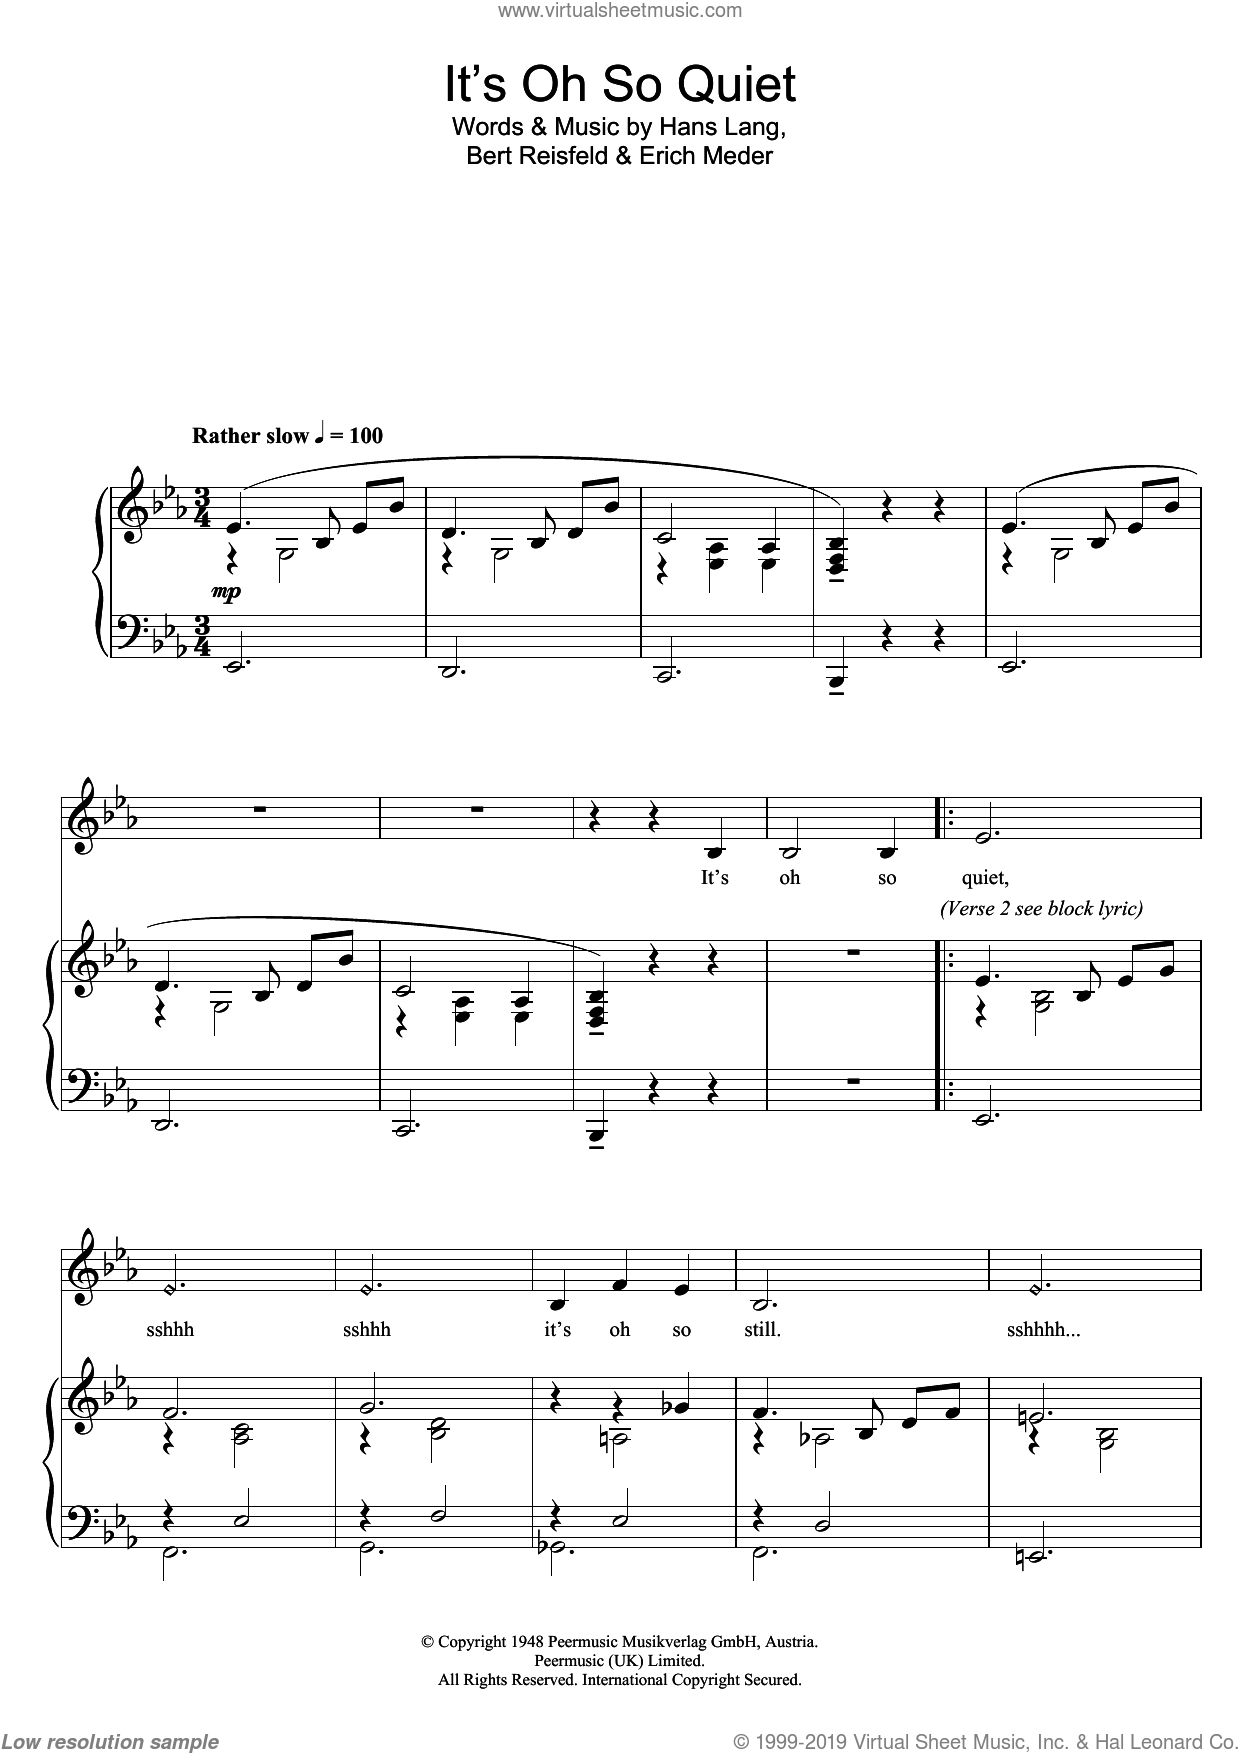 It's Oh So Quiet sheet music for piano solo by Hans Lang